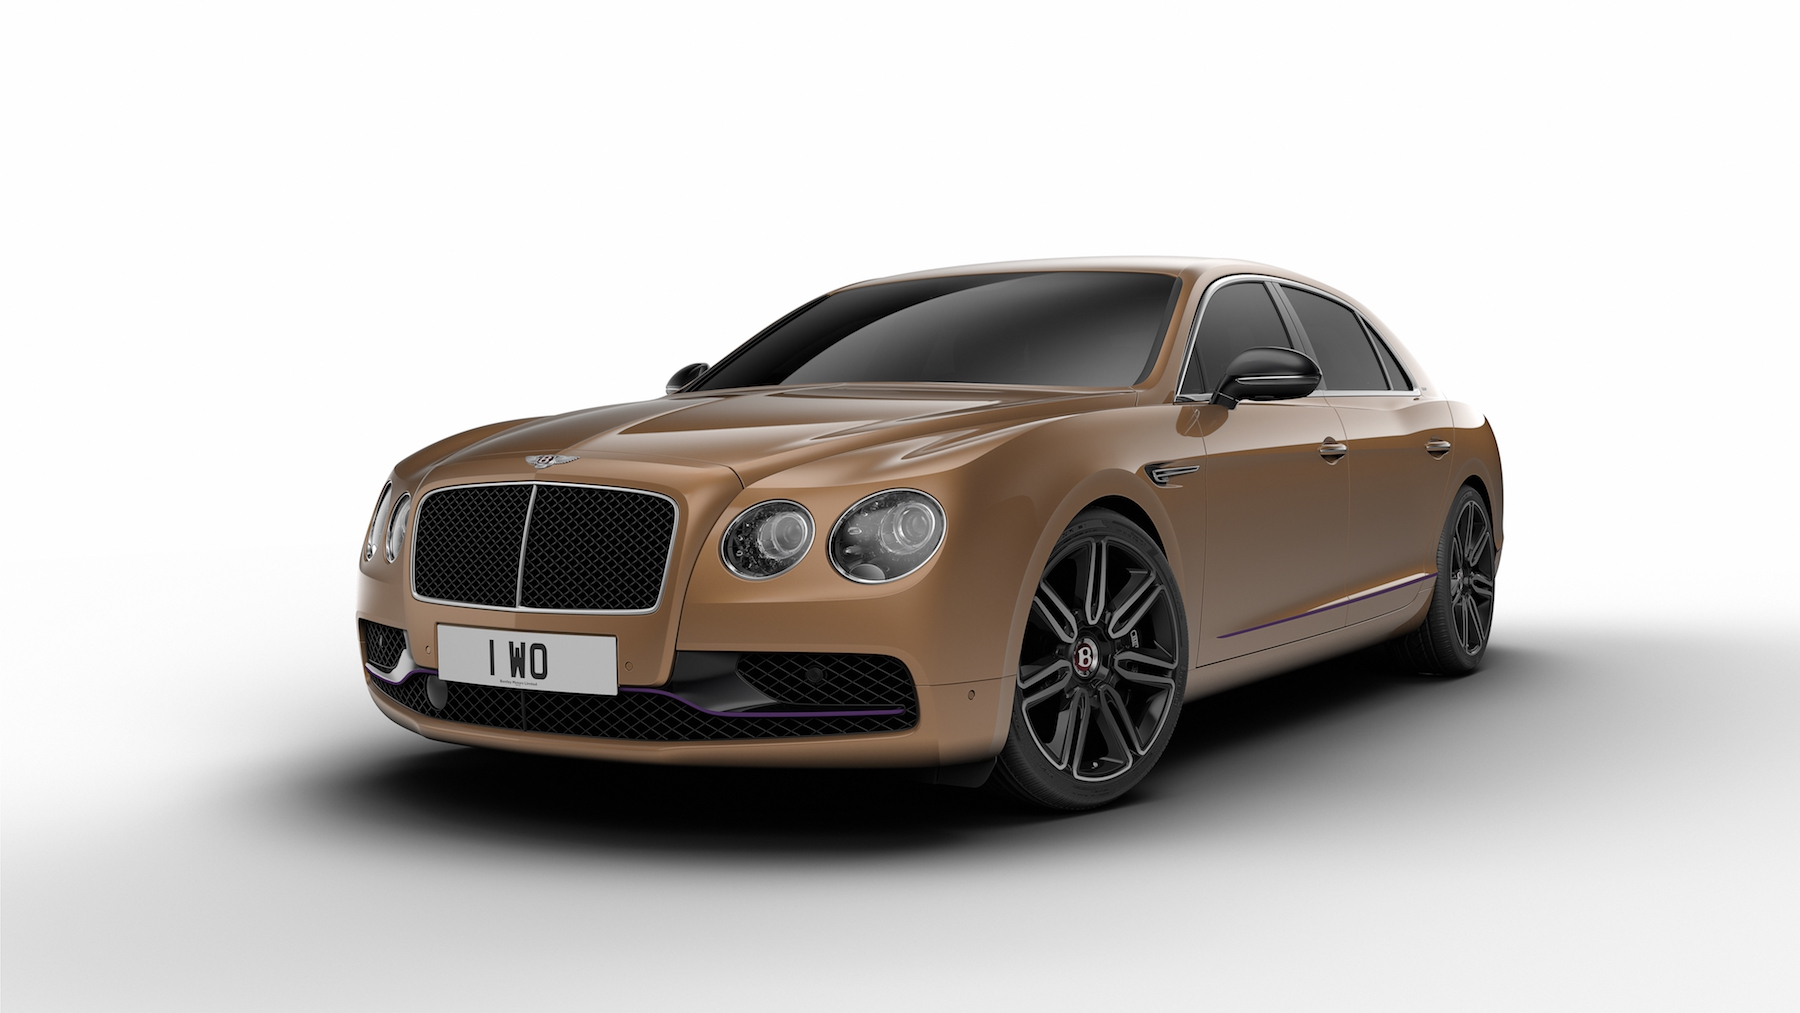 Buyer's Guide: Bentley Flying Spur